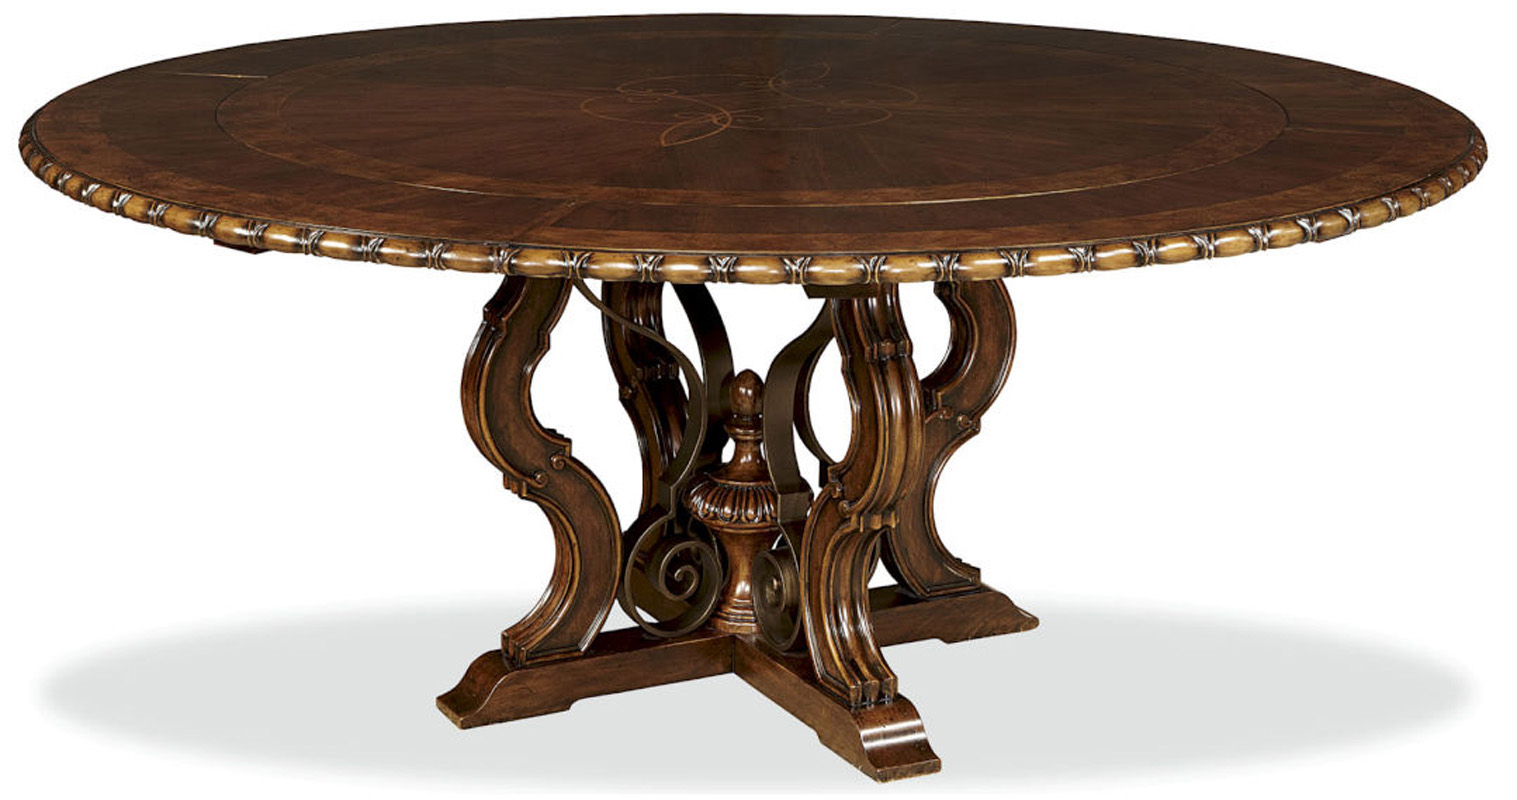 Unique cherry 76 round dining table with leaves ebay for Unusual tables